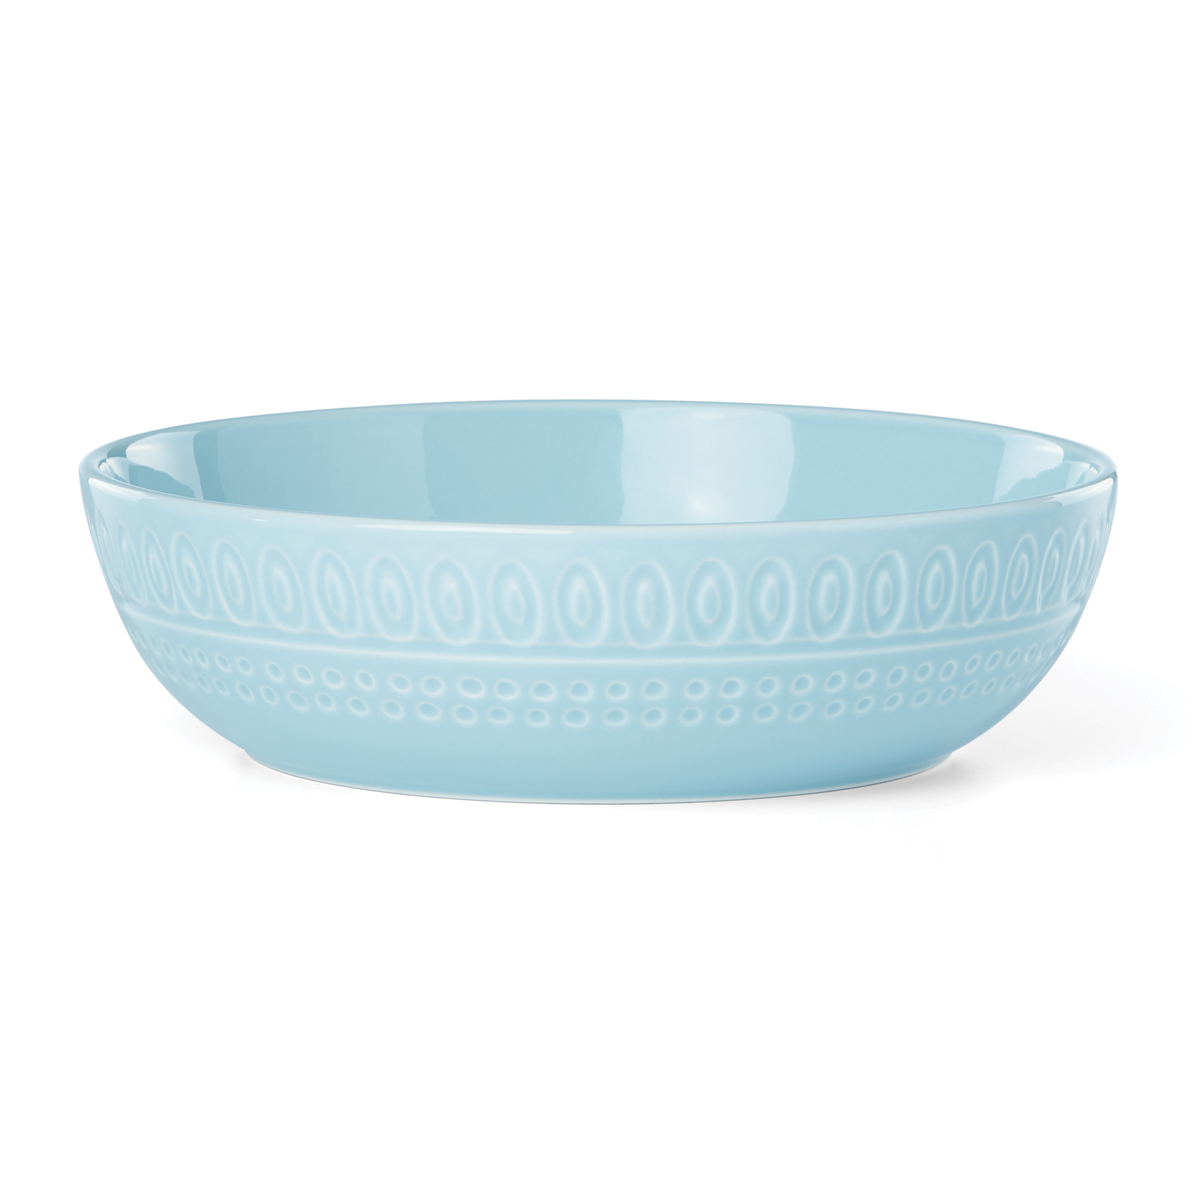 Kate Spade China by Lenox, Willow Dr Blue Dinner Bowl